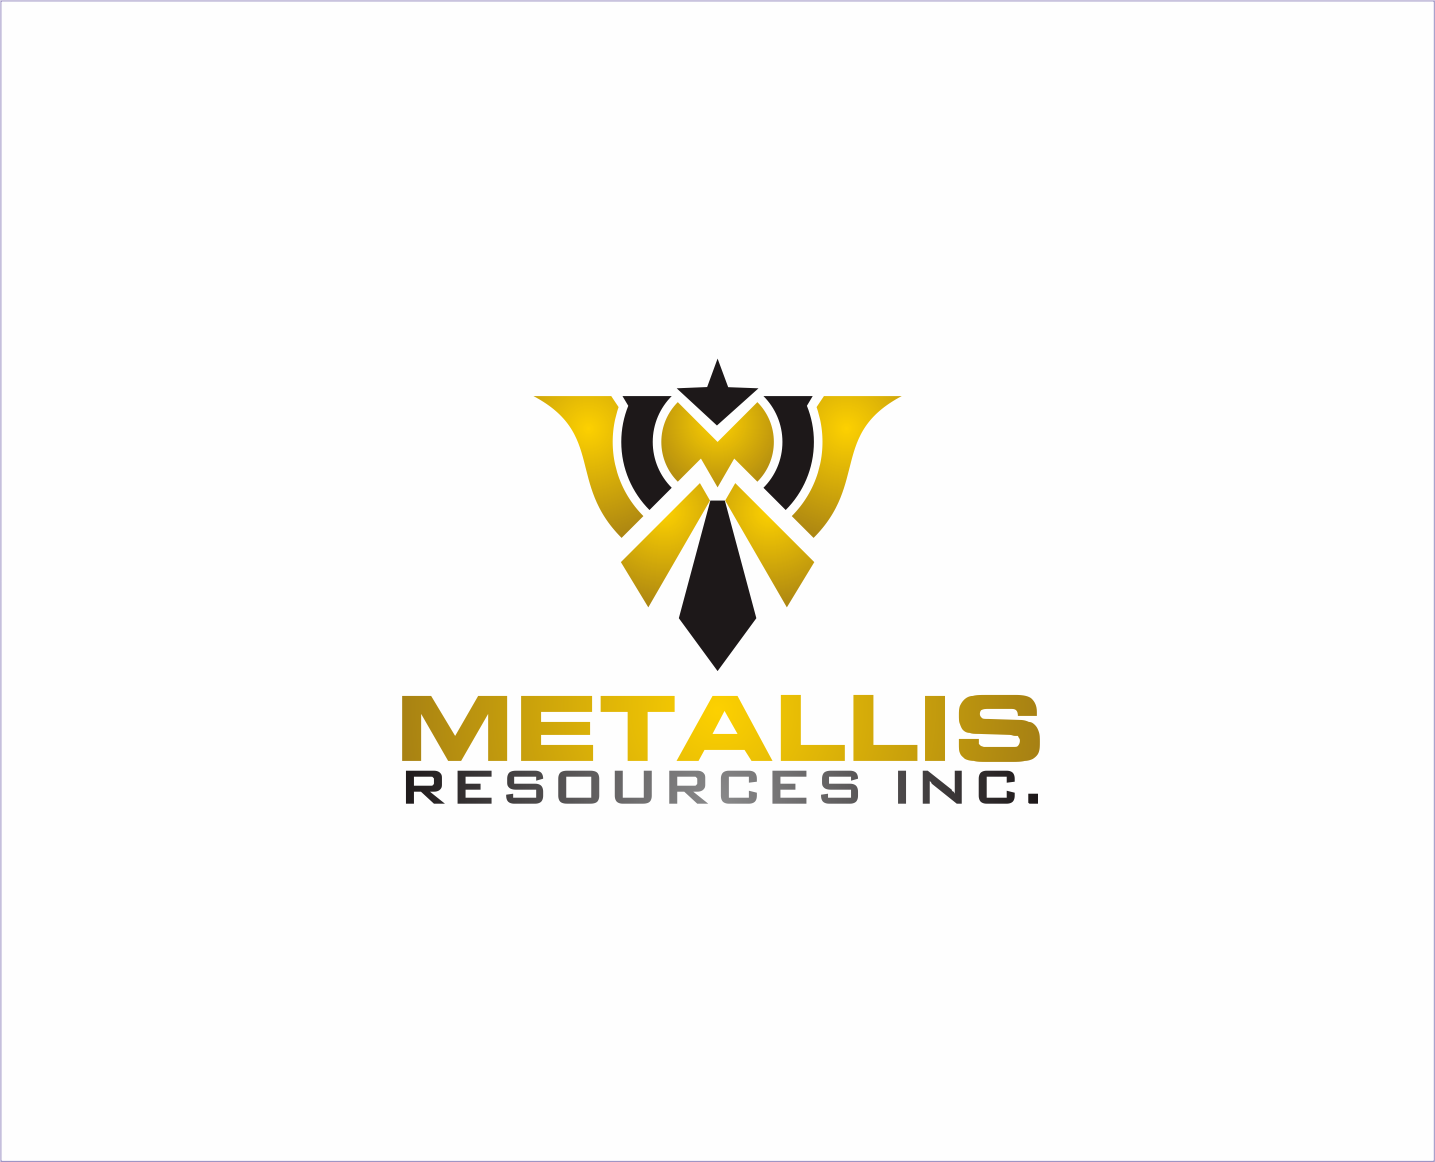 Logo Design by Armada Jamaluddin - Entry No. 133 in the Logo Design Contest Metallis Resources Inc Logo Design.